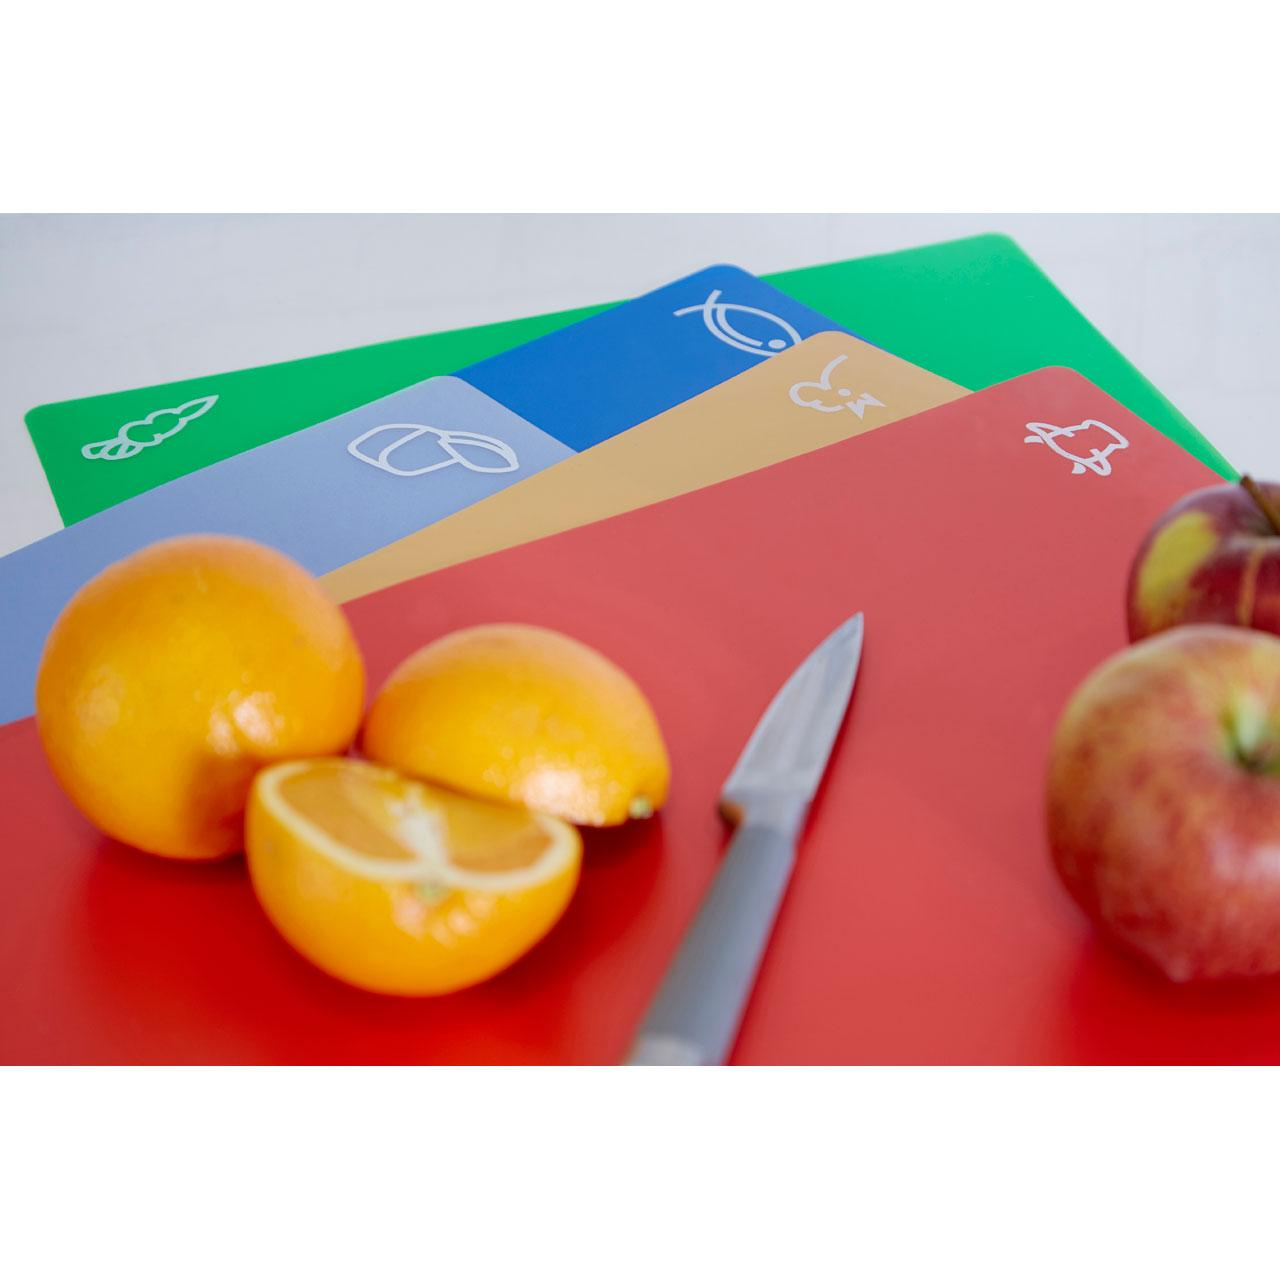 The item for sale is premier set of 5 coloured flexible chopping - Displayed Colourful Chopping Mats